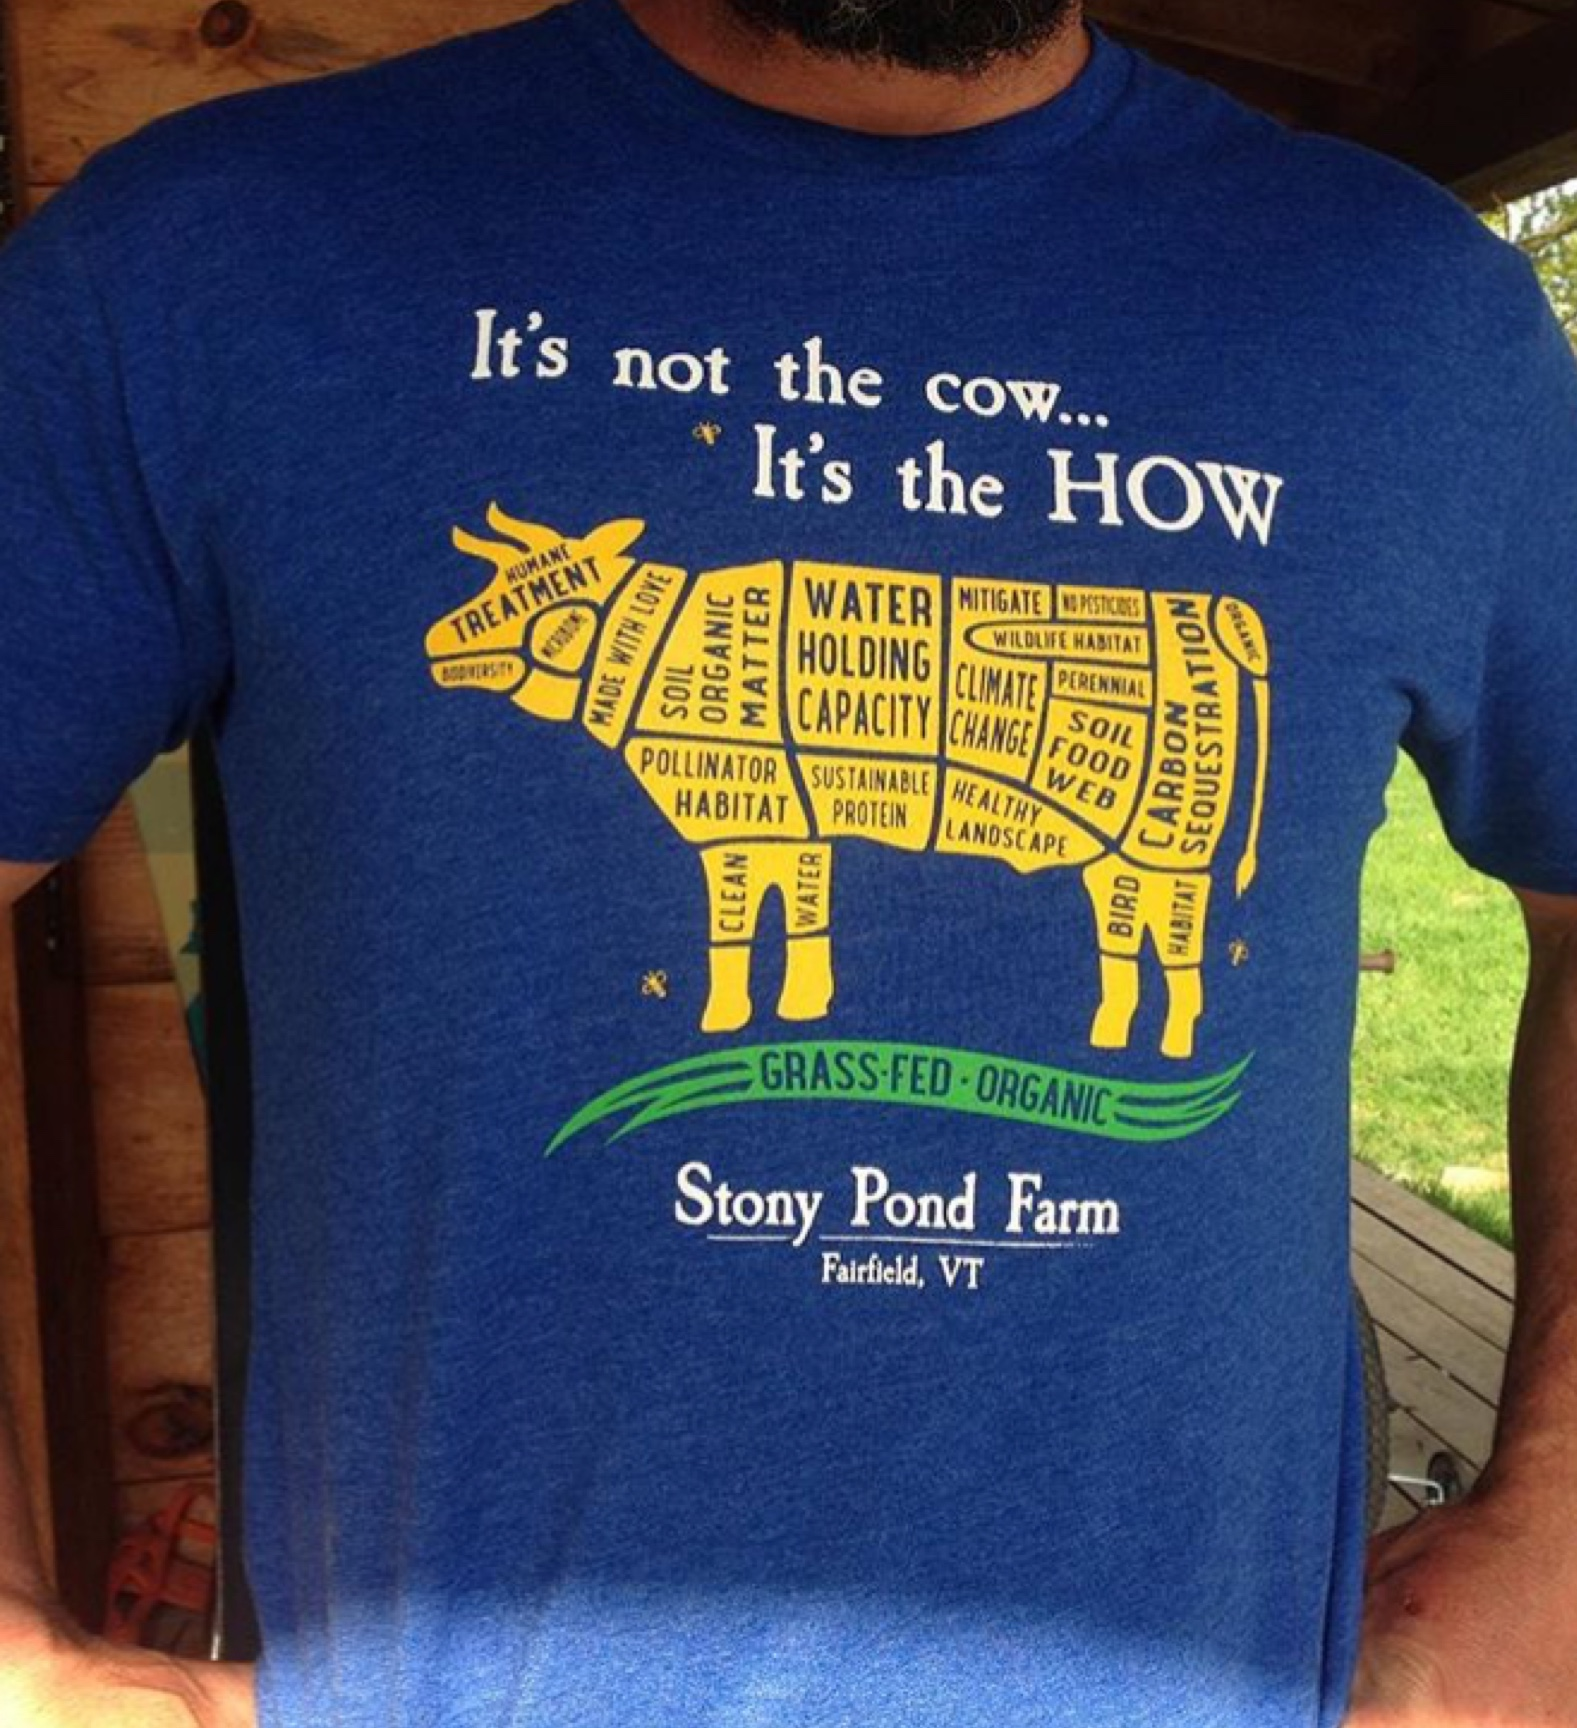 Tyler wears a shirt that says, it's not the cow, it's the how, with a graphic of a cow split into segments labeled with different sustainability values.